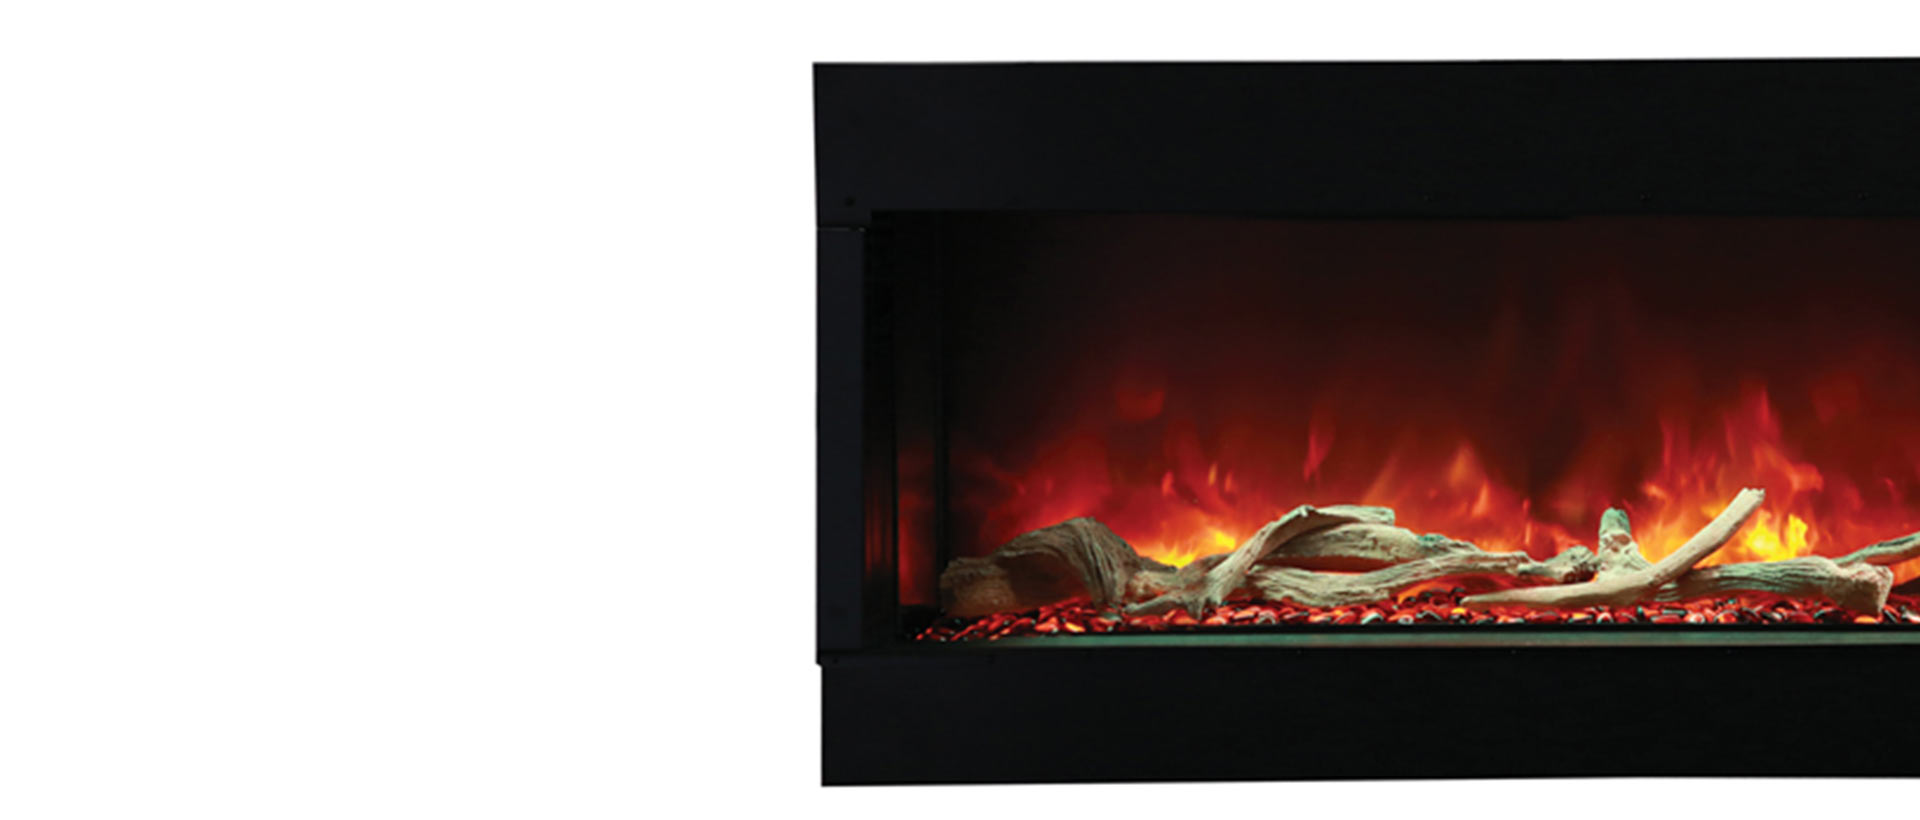 proweld toronto u0027s 1 electric fireplaces wall mount buy now